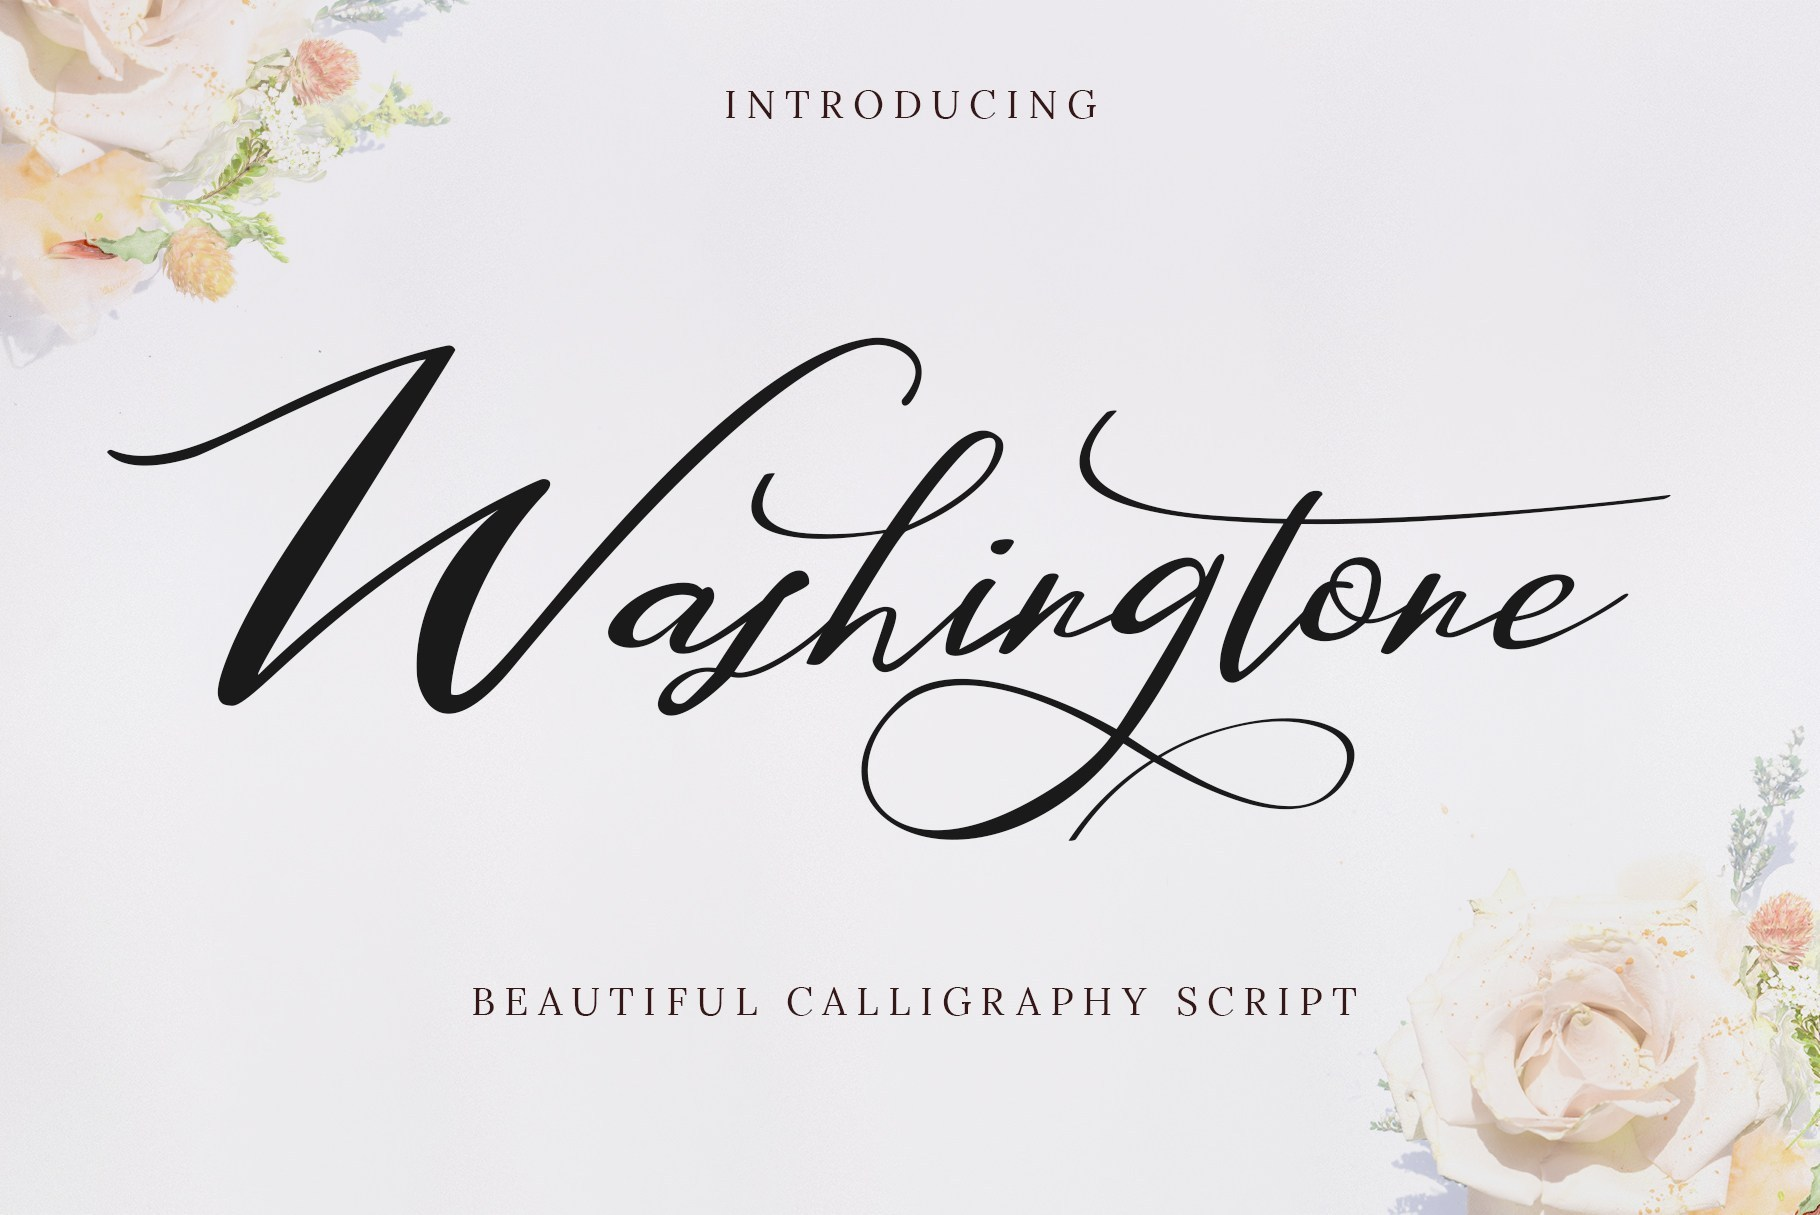 Washington-Beautiful-Calligraphy-Script-Font-1